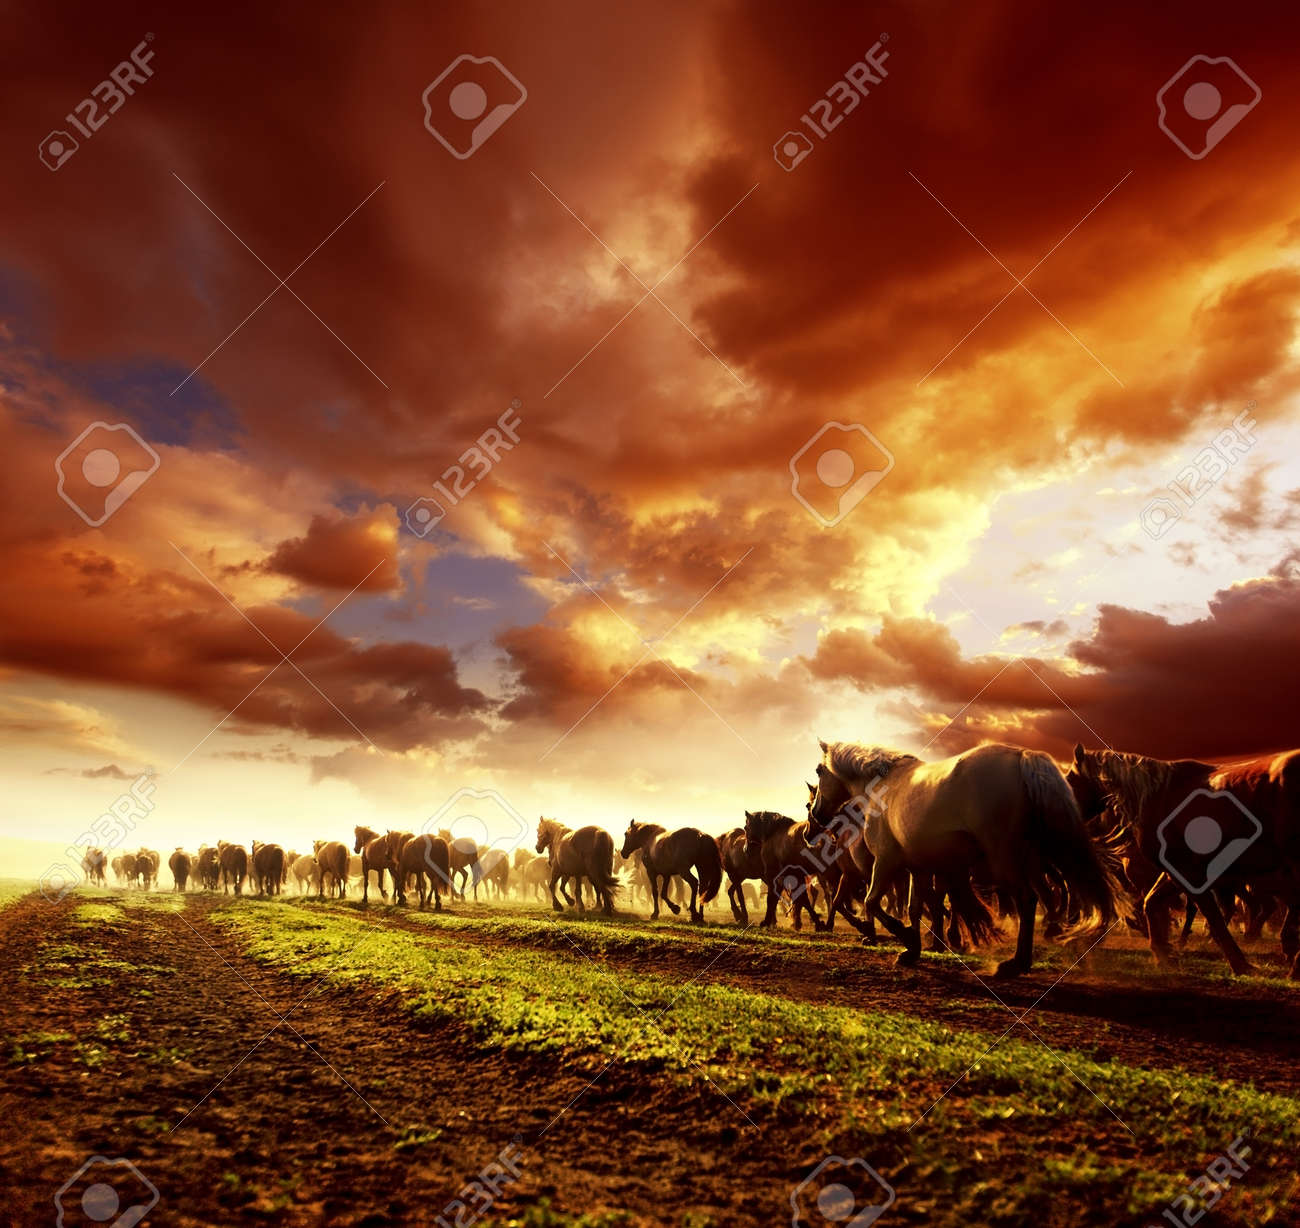 Running Wild Horses In Sunset Stock Photo Picture And Royalty Free Image Image 82721085